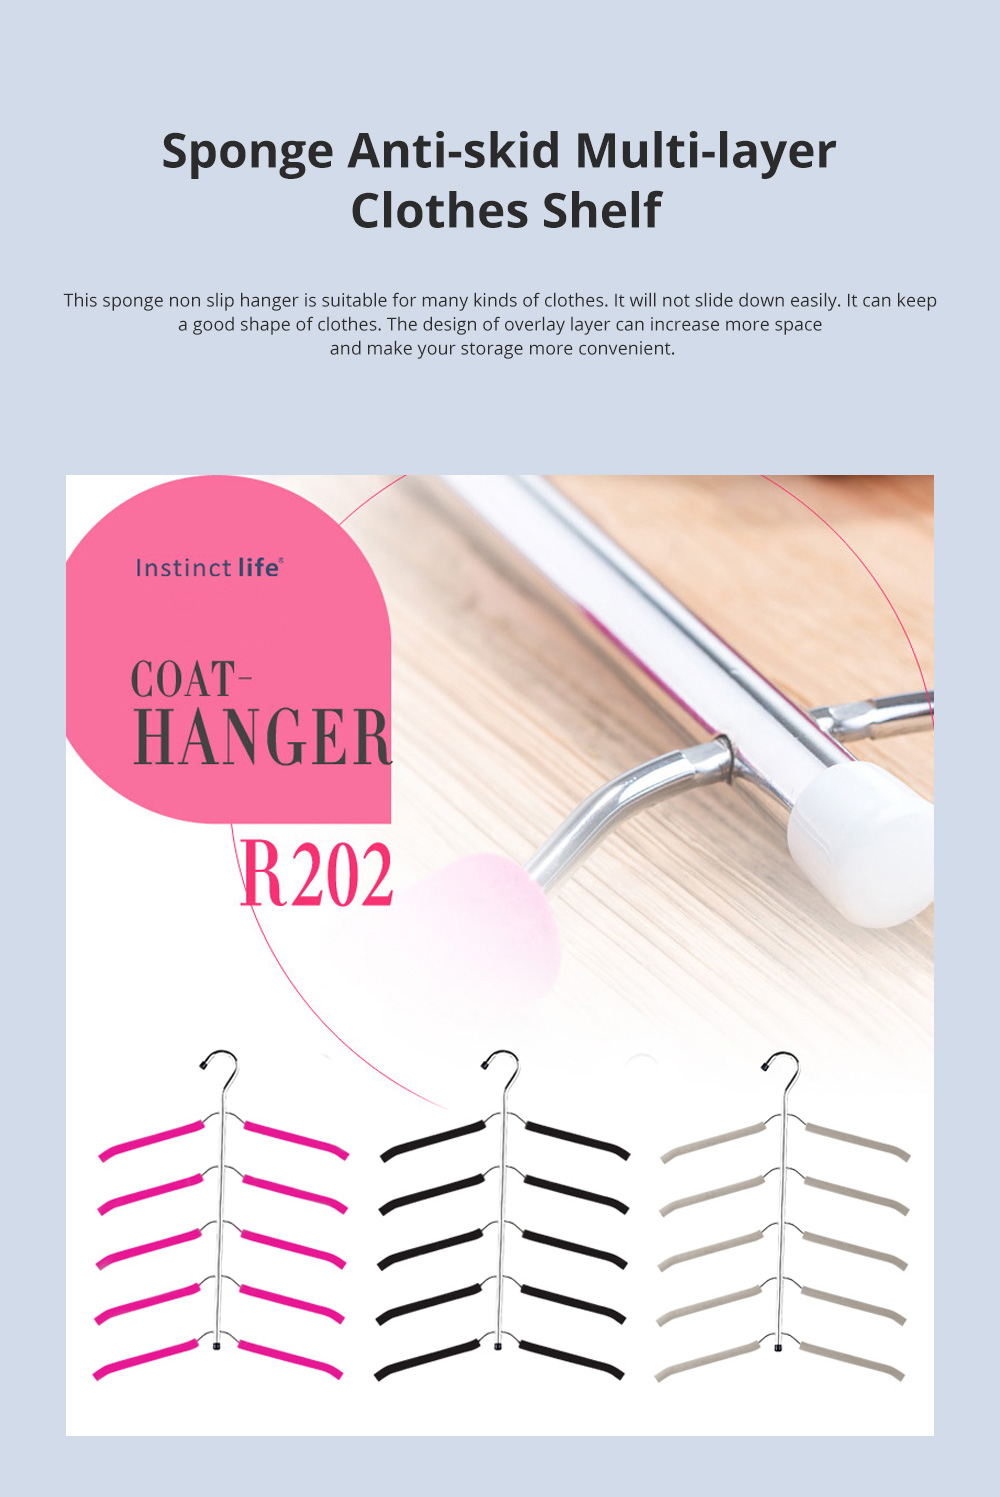 Sponge Anti-skid Multi-layer Clothes Shelf Stainless Steel Clothes Storage Rack Multifunctional Creative Clothes Hanger 0